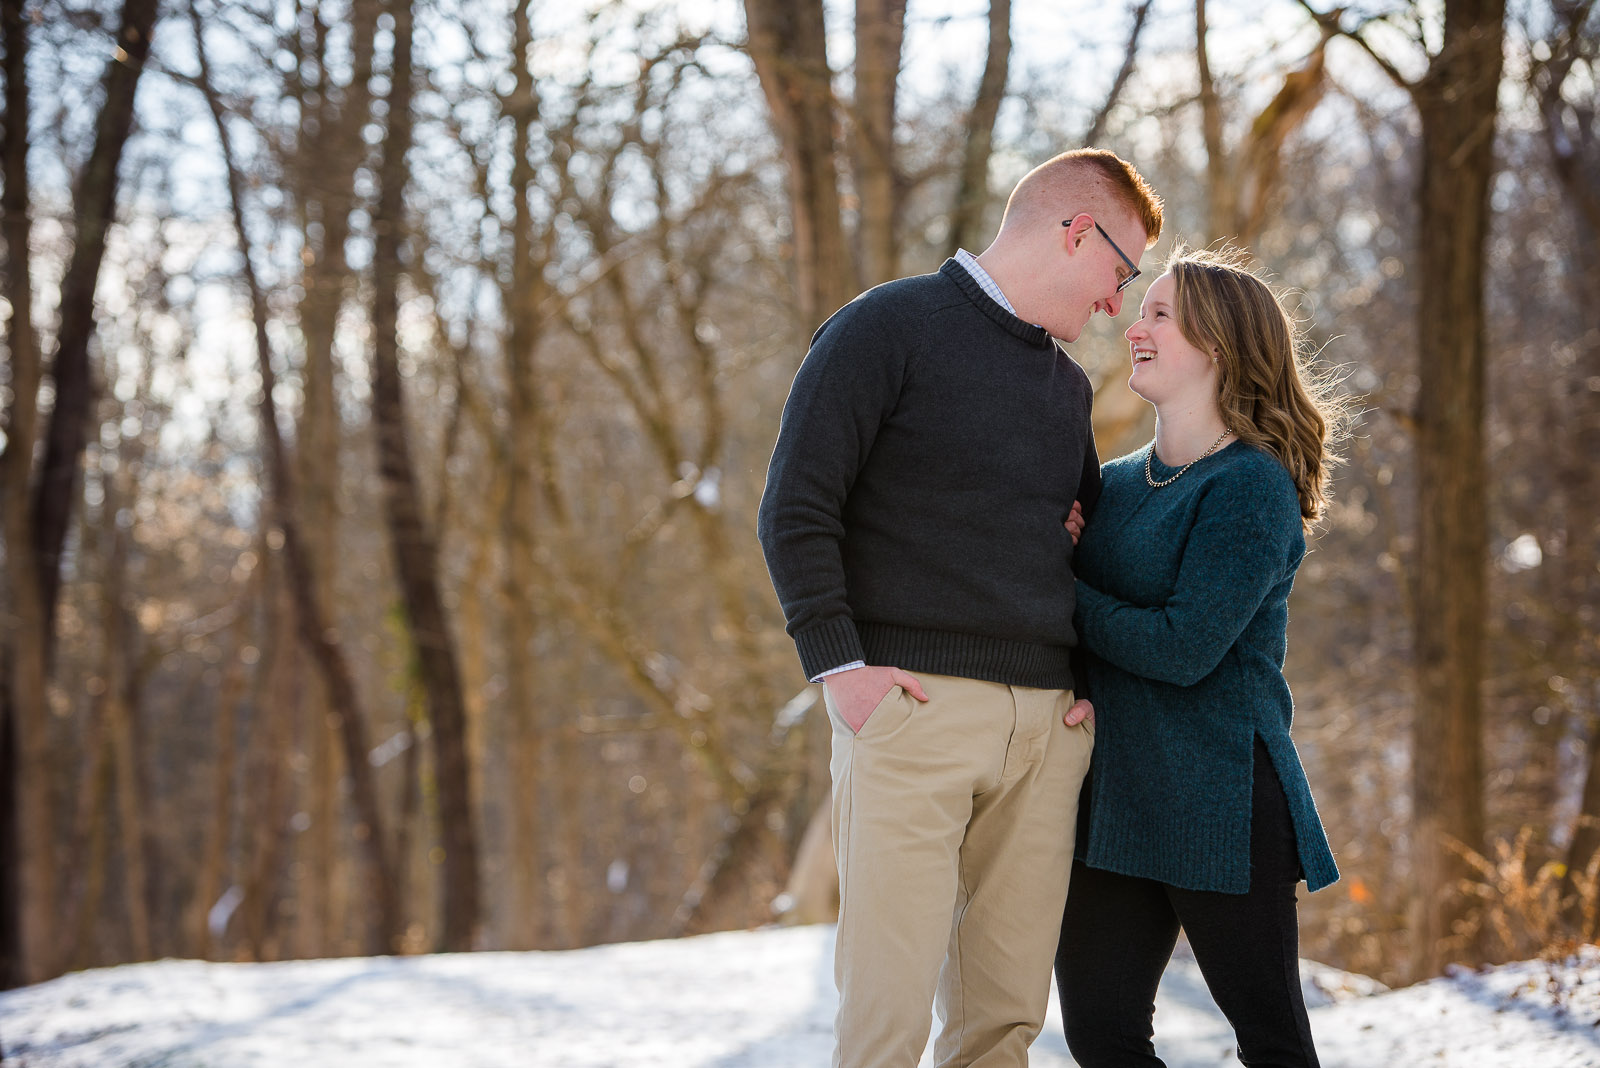 Eric_and_Christy_Photography_Engagement_Erica_Mike-8